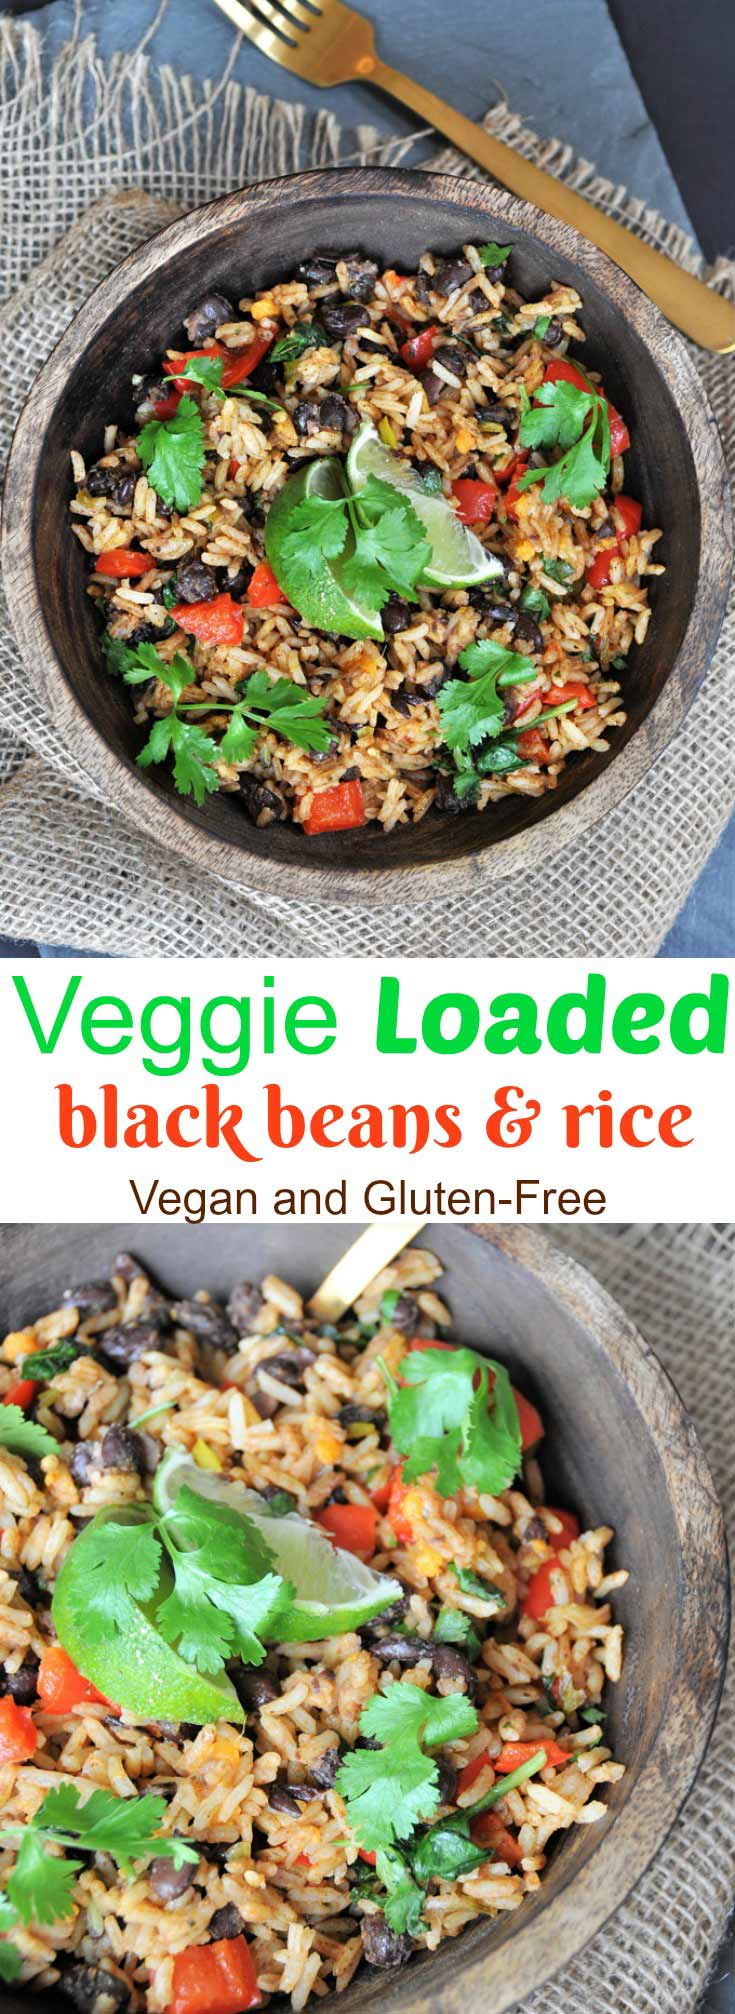 Veggie Loaded Black Beans And Rice Veganosity